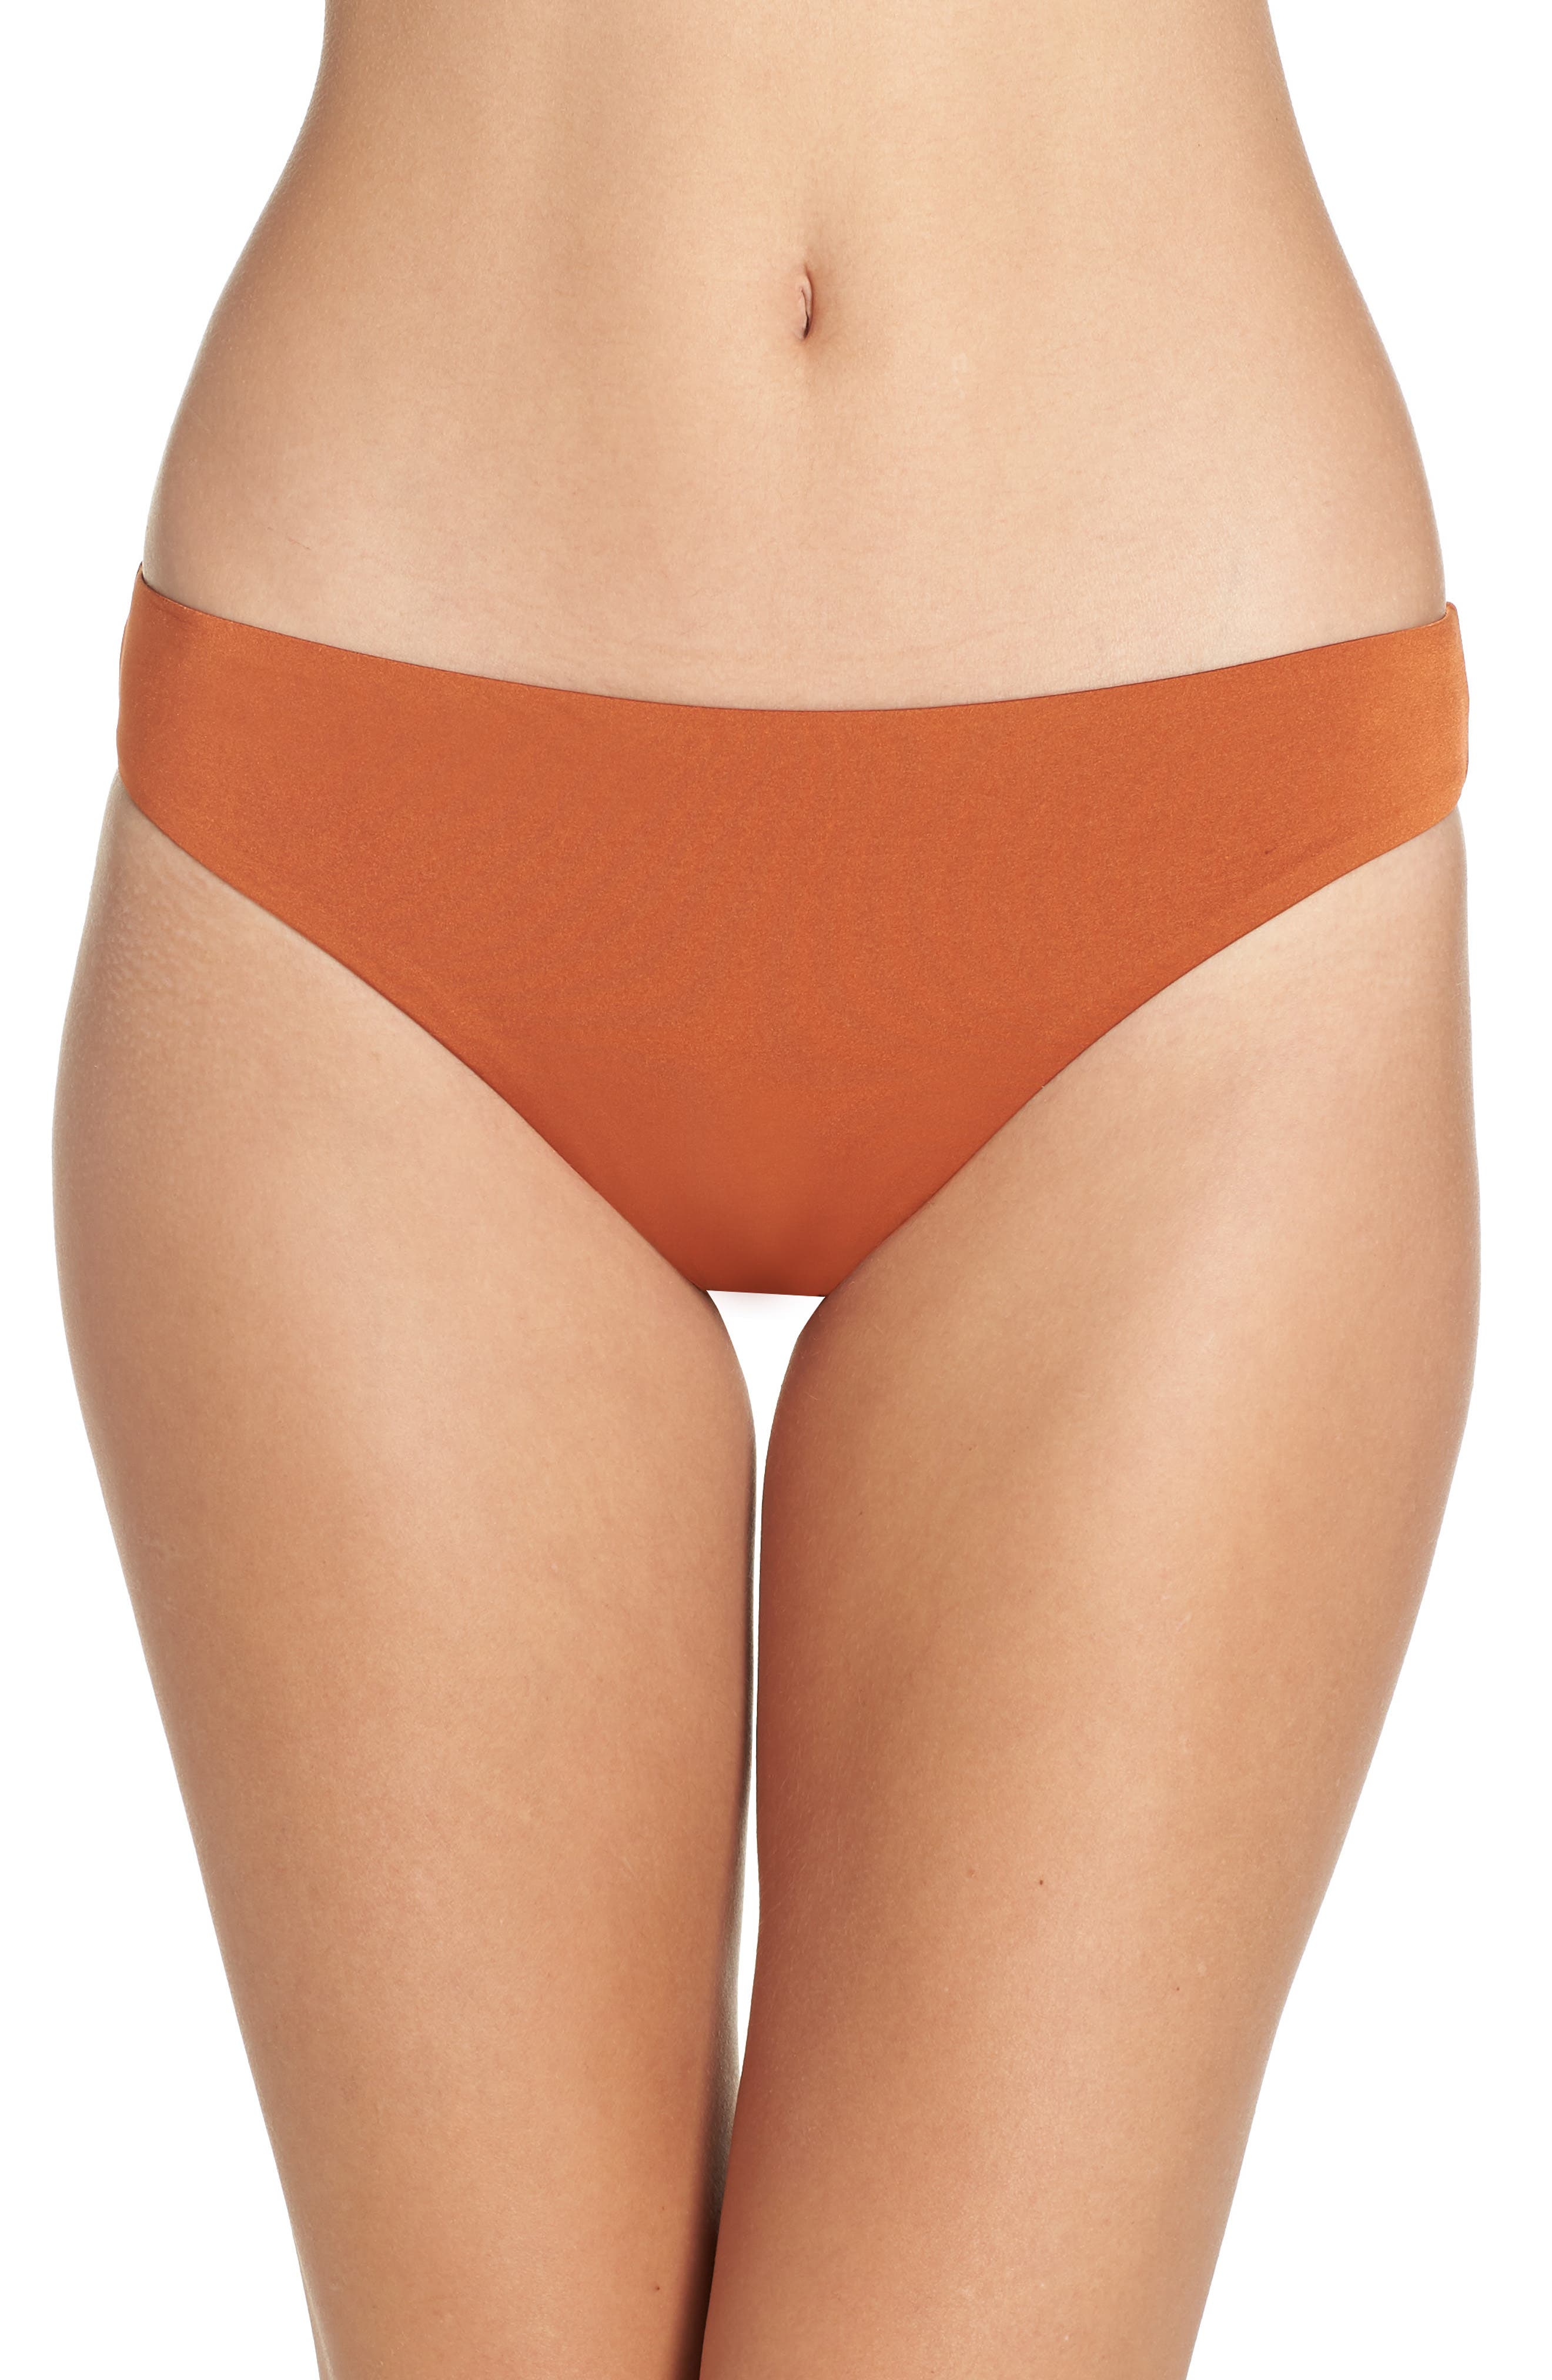 Route 66 Hipster Bikini Bottoms,                             Main thumbnail 1, color,                             SIENNA